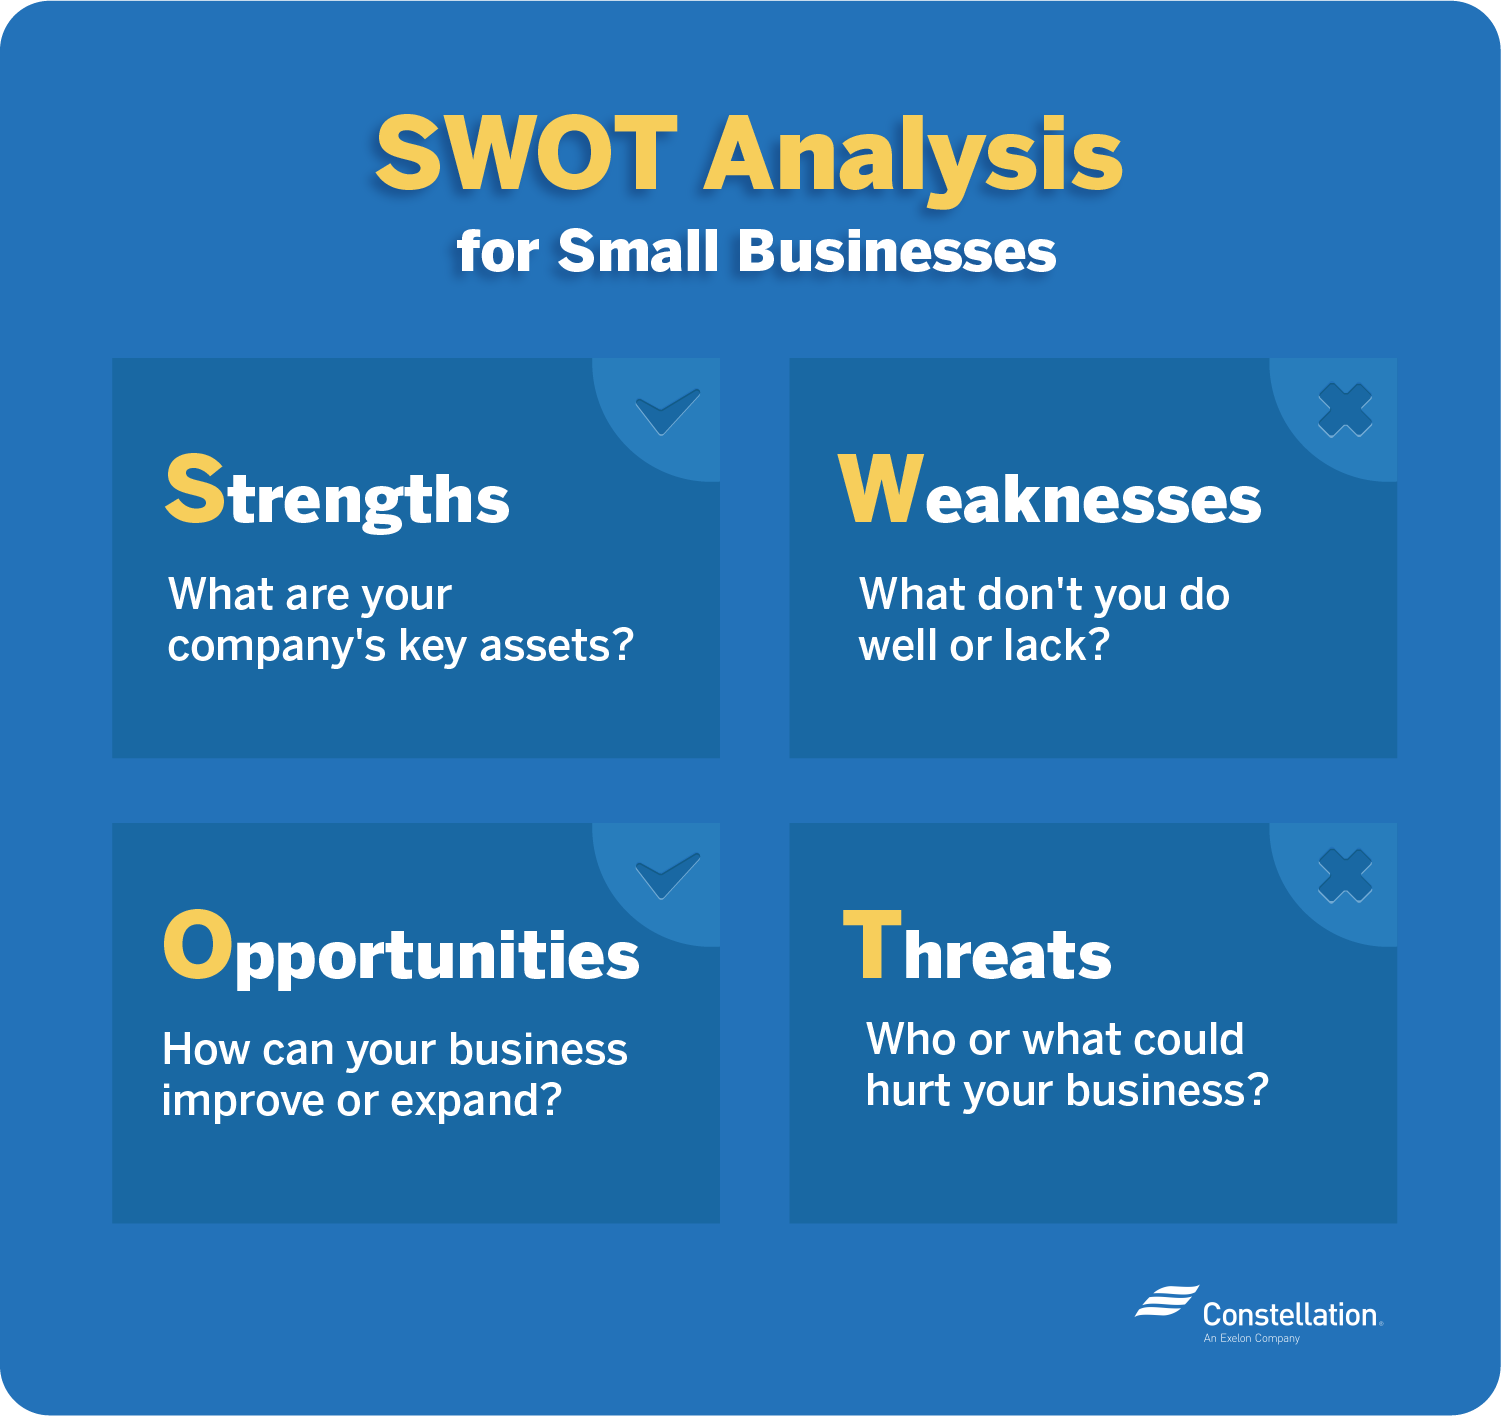 The SWOT technique for small businesses